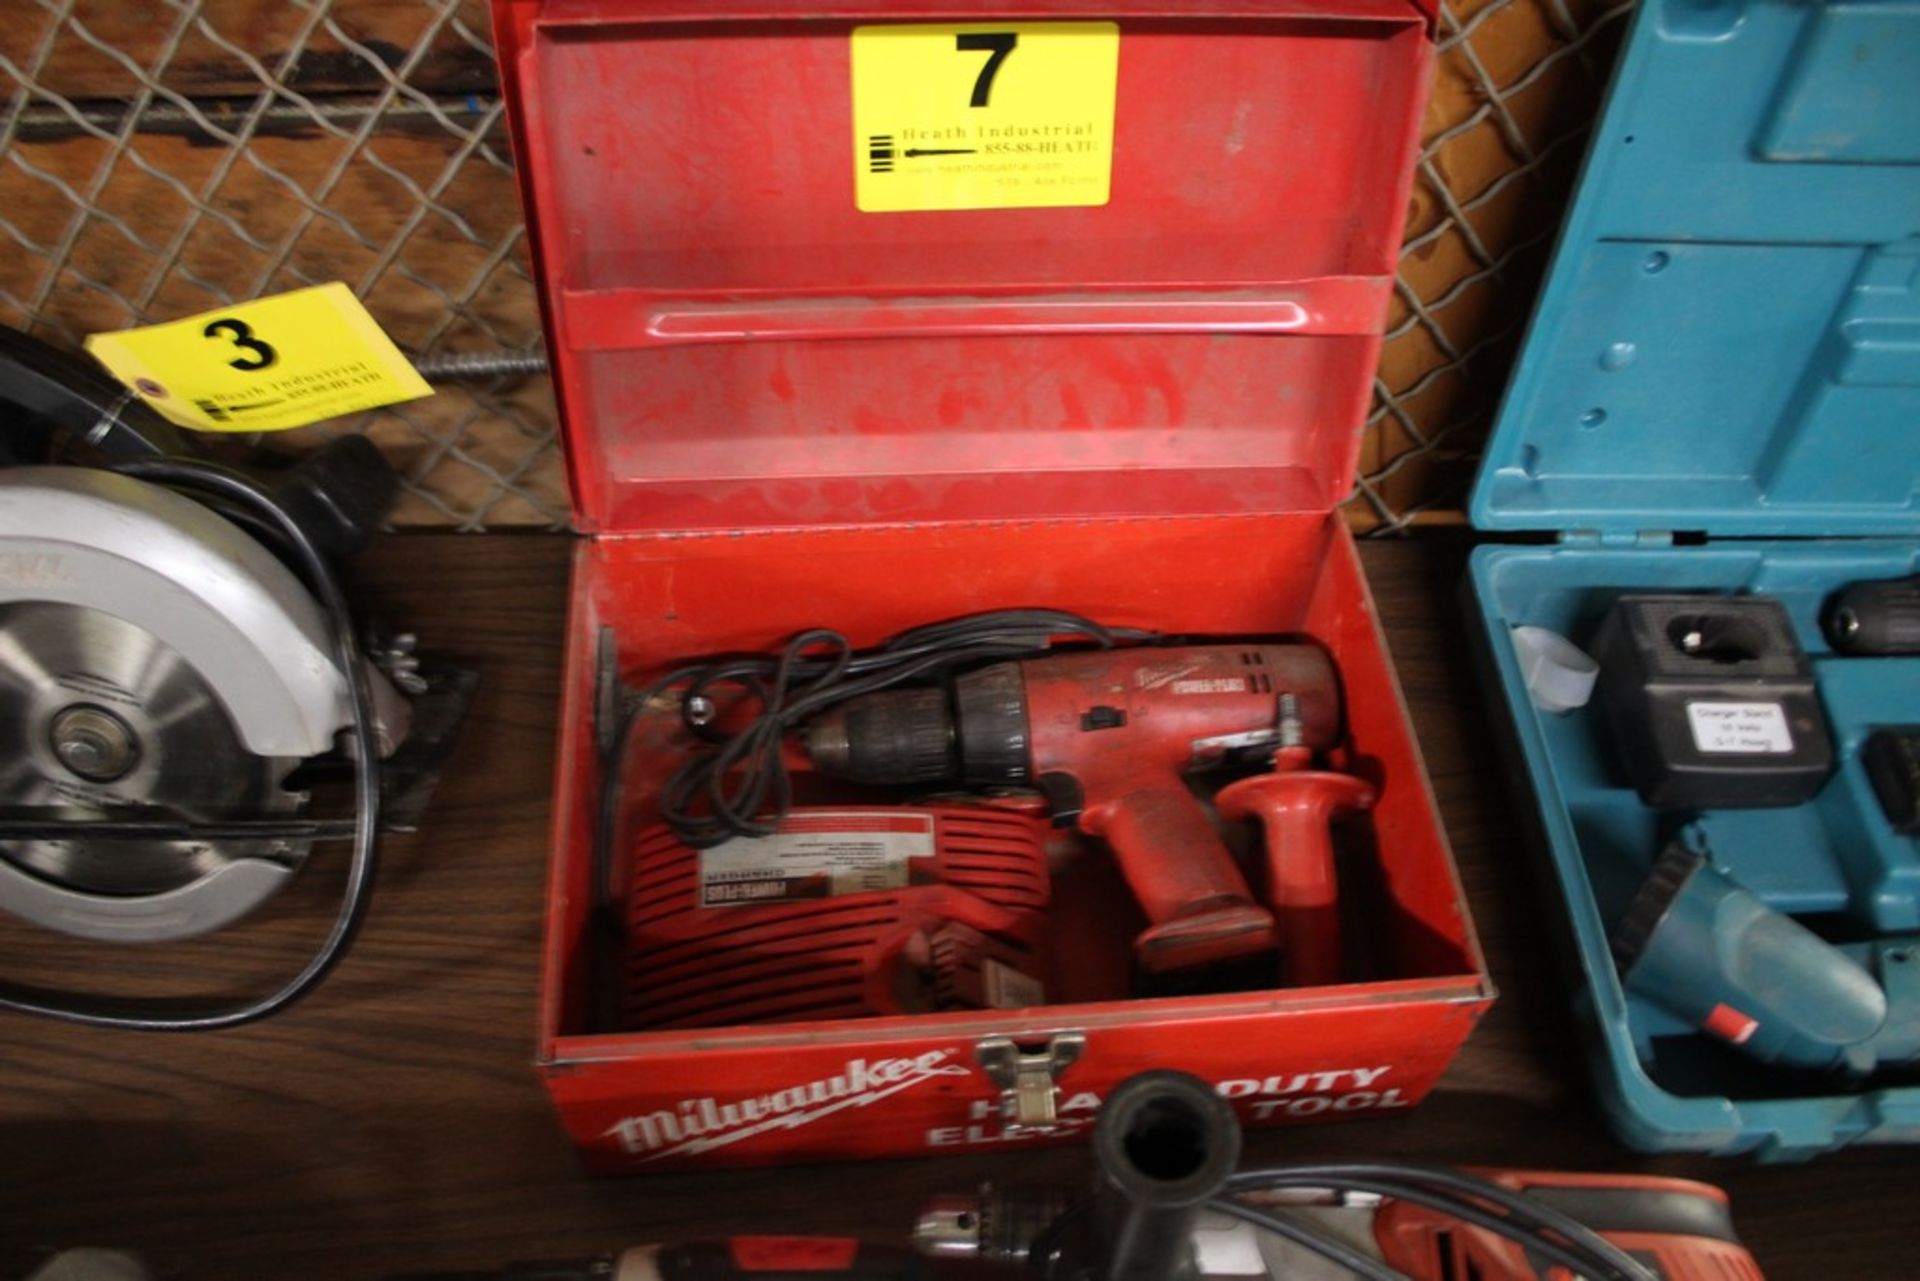 Lot 7 - MILWAUKEE POWER PLUS CORDLESS DRIVER WITH CHARGE, NO BATTERY